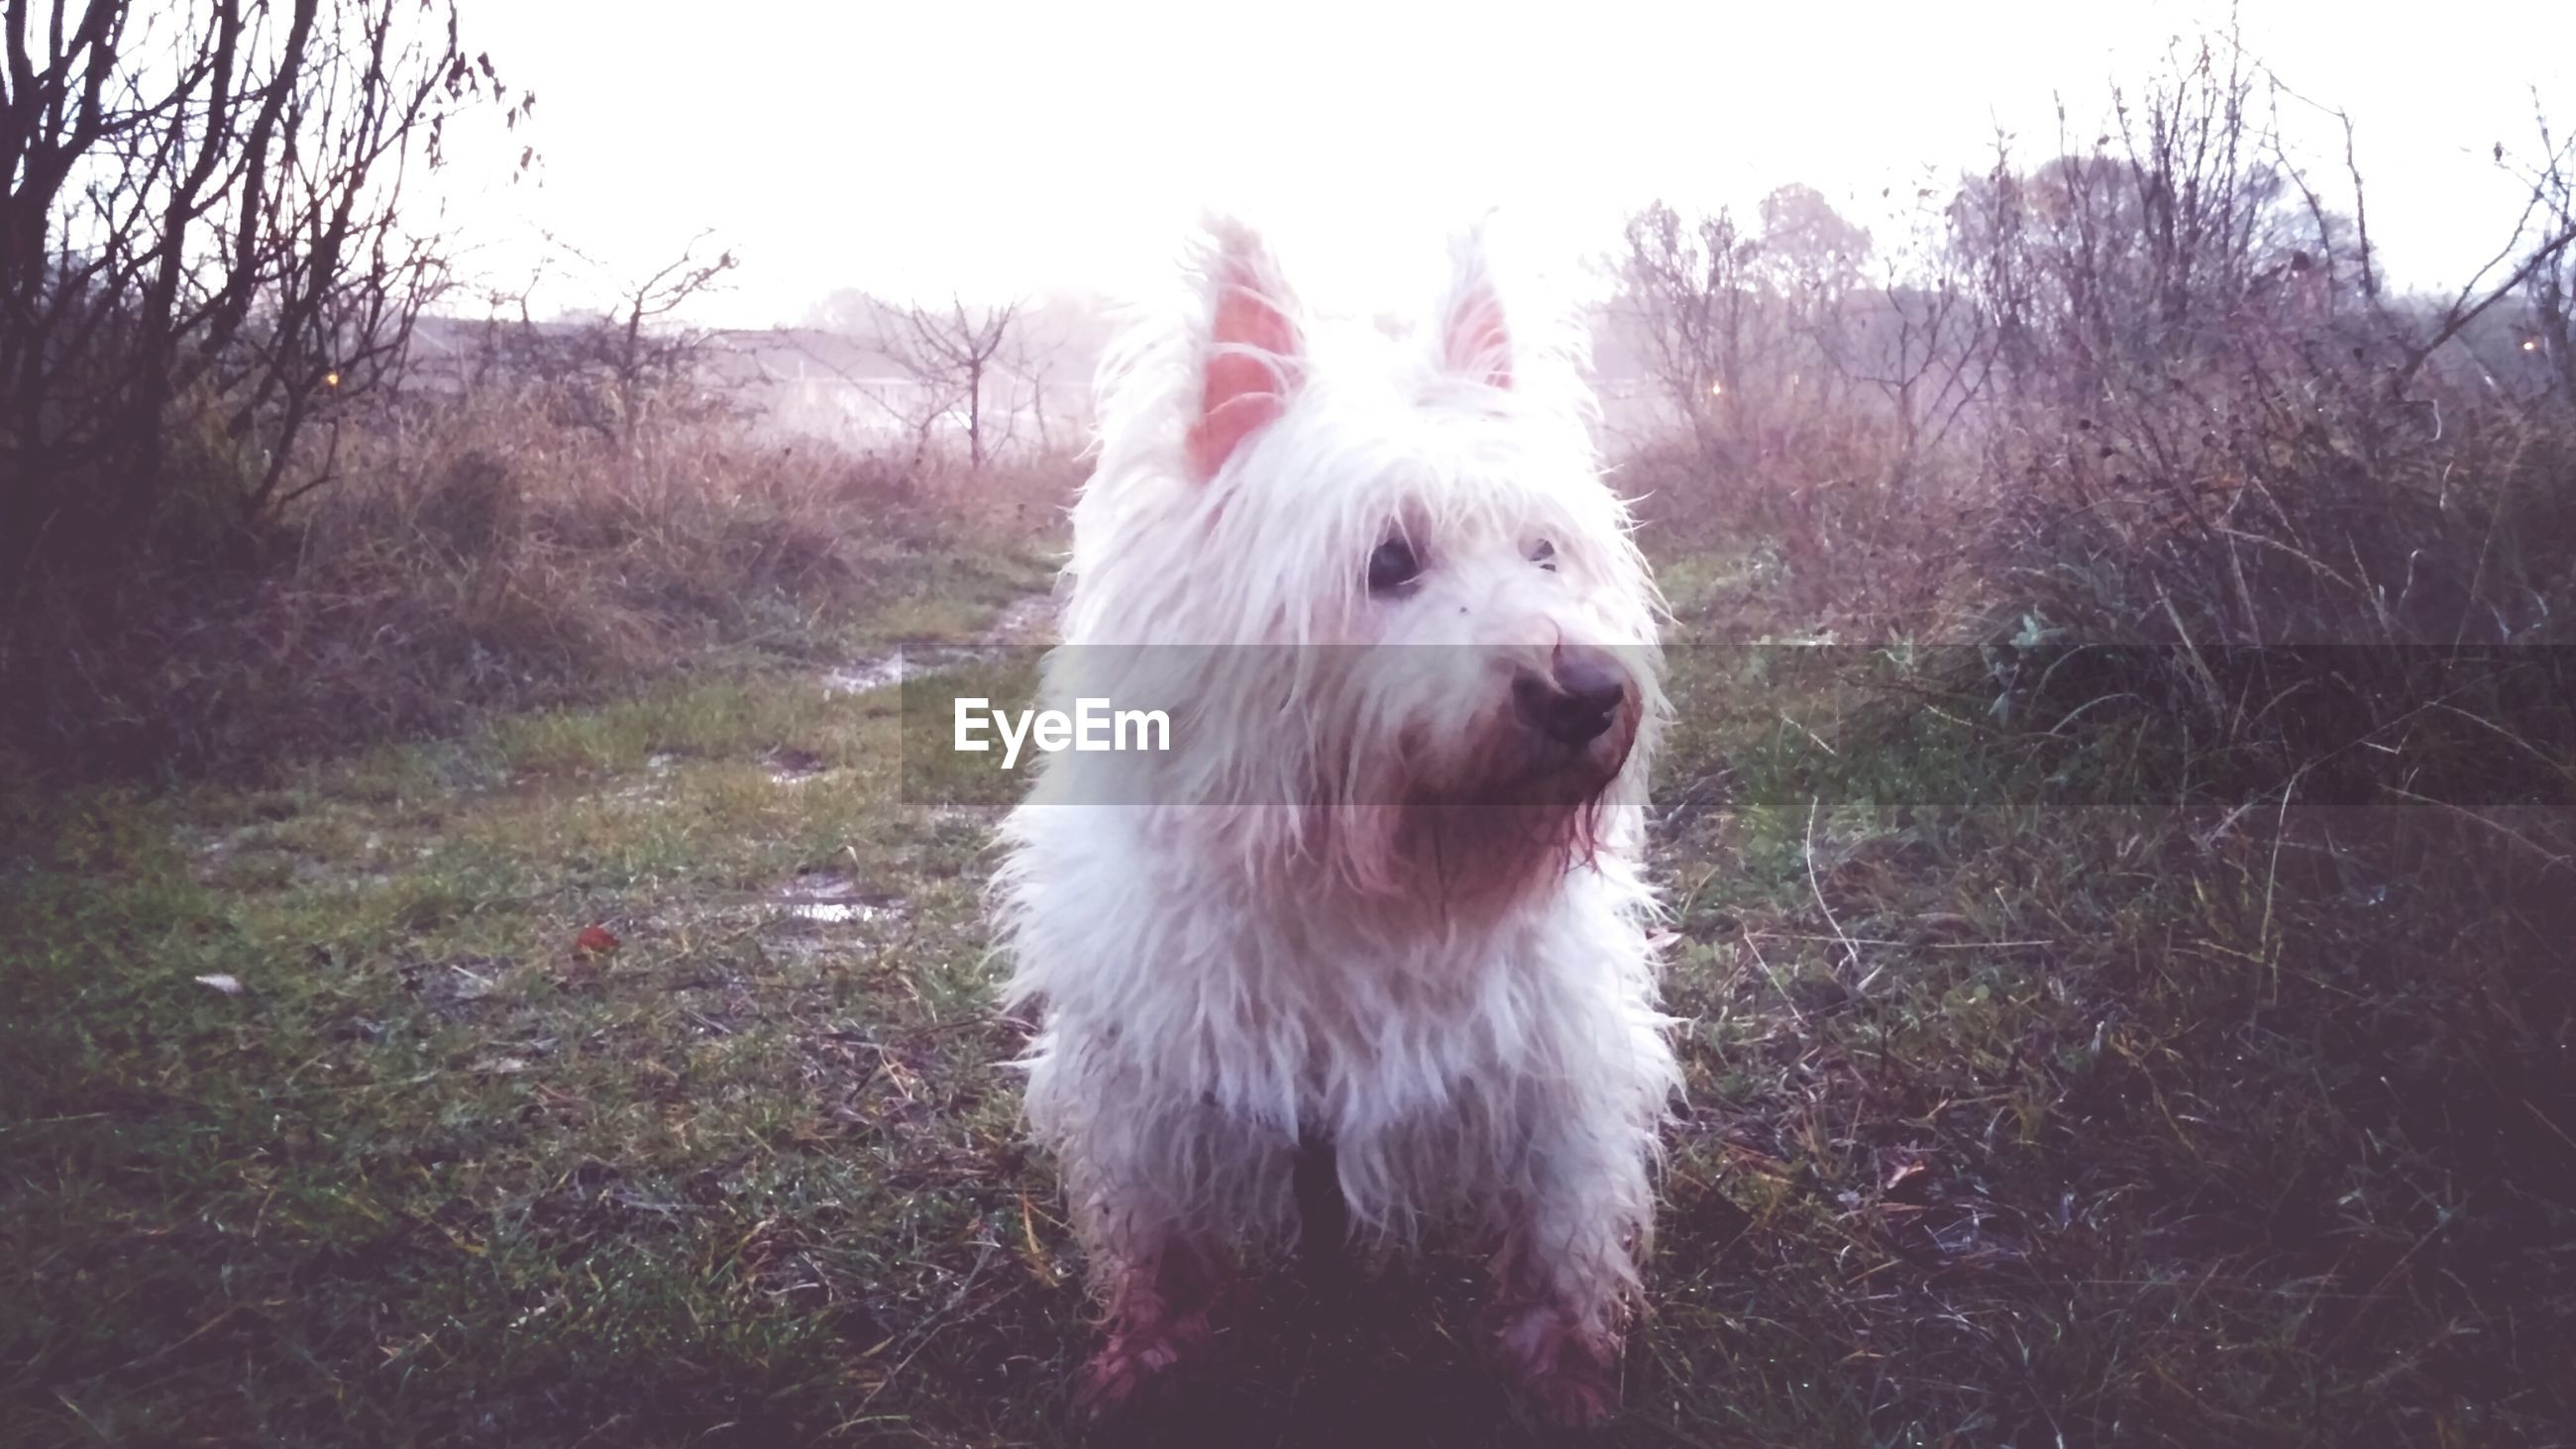 domestic animals, mammal, animal themes, pets, one animal, dog, grass, field, landscape, grassy, nature, no people, livestock, standing, day, tree, outdoors, animal head, animal hair, sticking out tongue